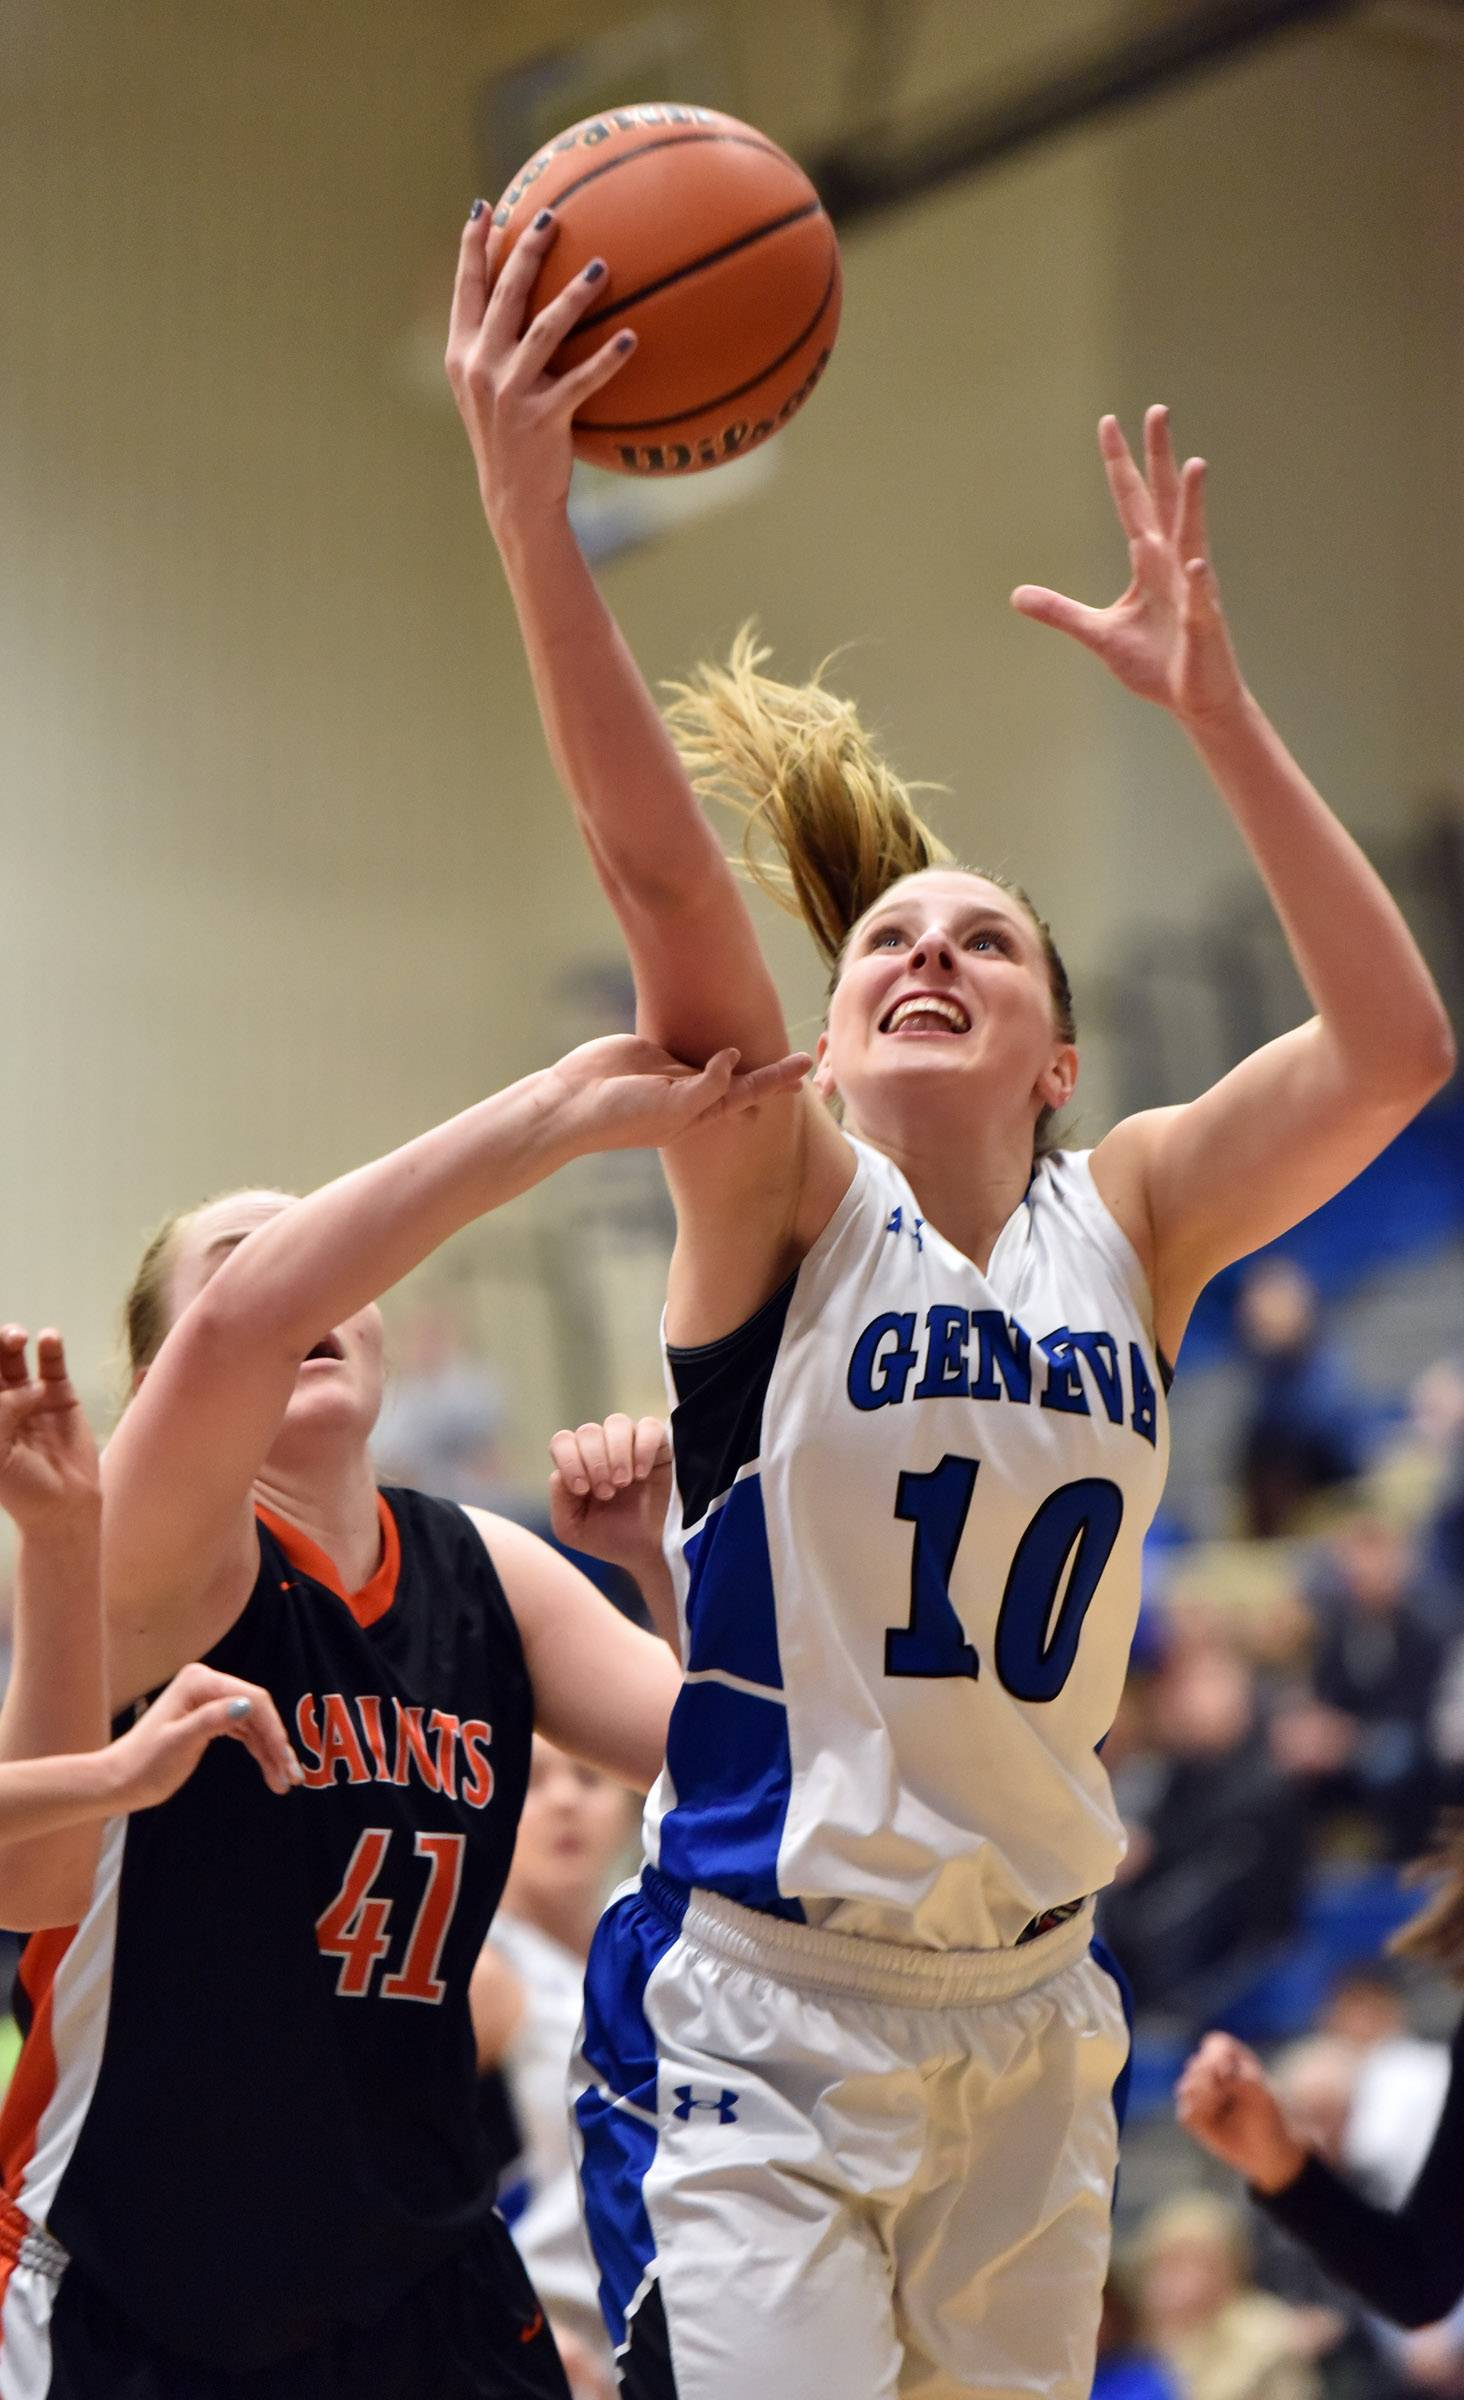 Geneva's Grace Loberg grabs a rebound against St. Charles East's Sara Rosenfeldt earlier this season. The Vikings are the No. 1 seed in the upcoming Class 4A Glenbard West sectional.